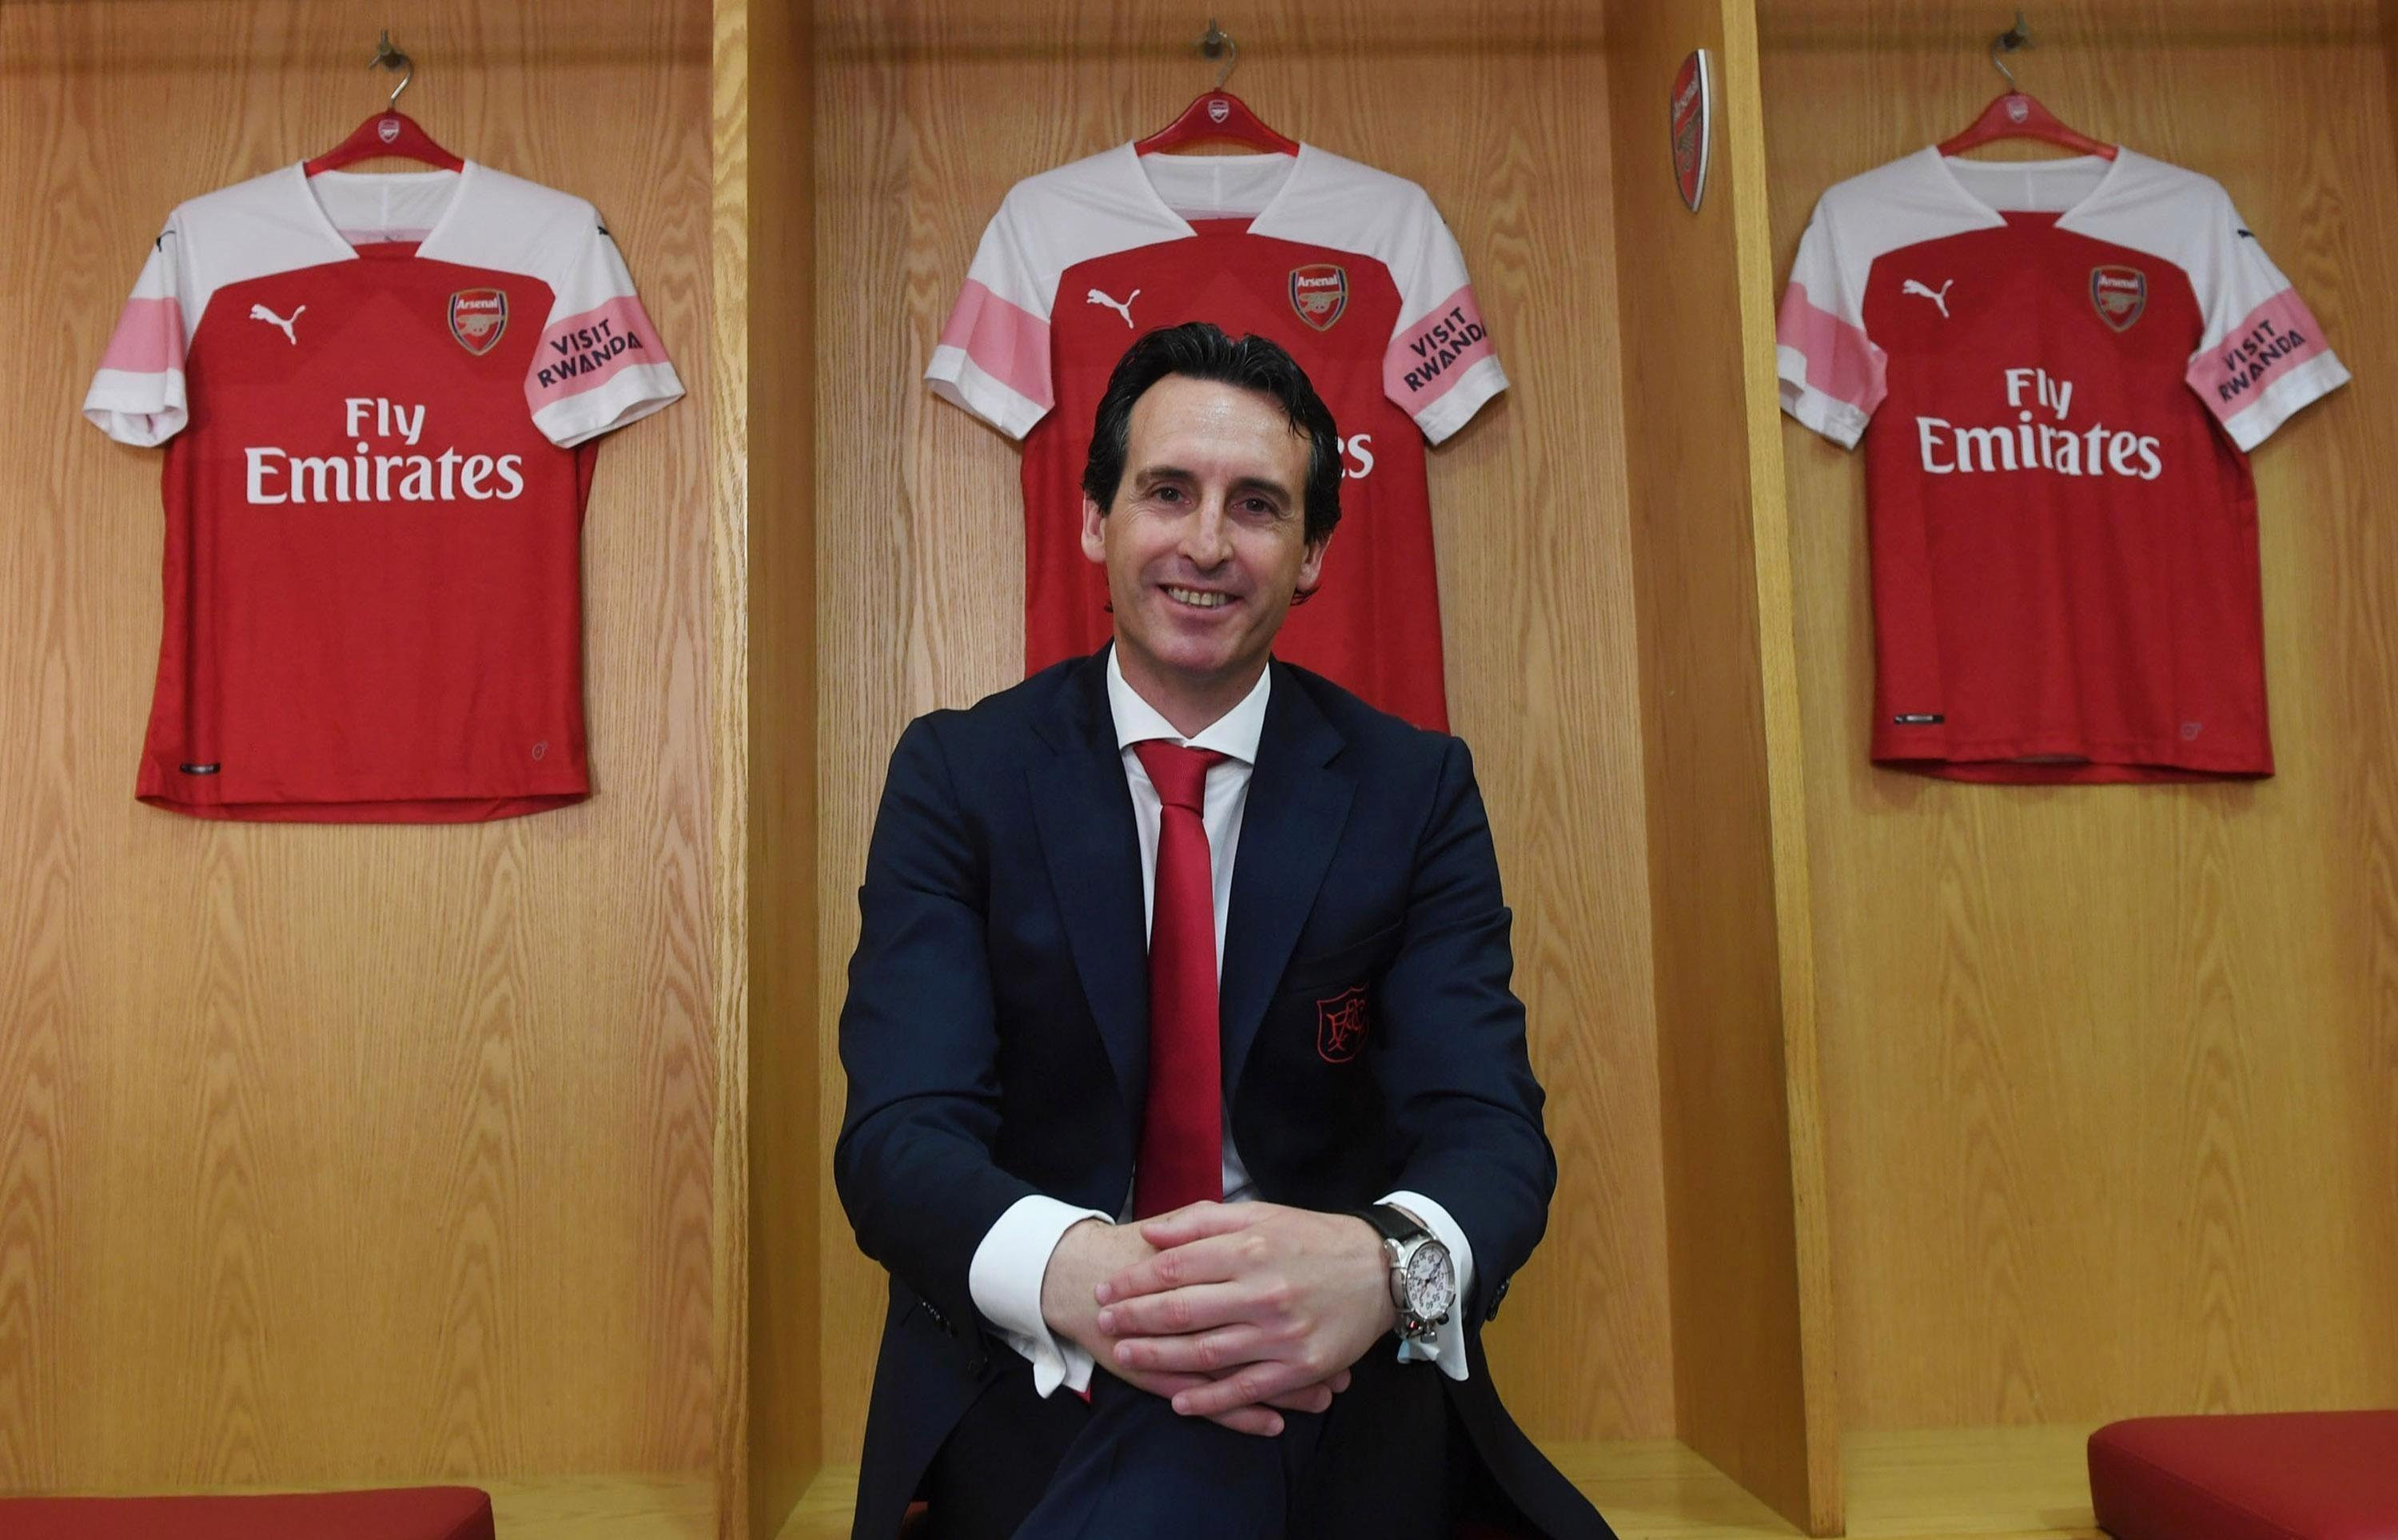 Unai Emery was unveiled as Arsene Wengers successor last week